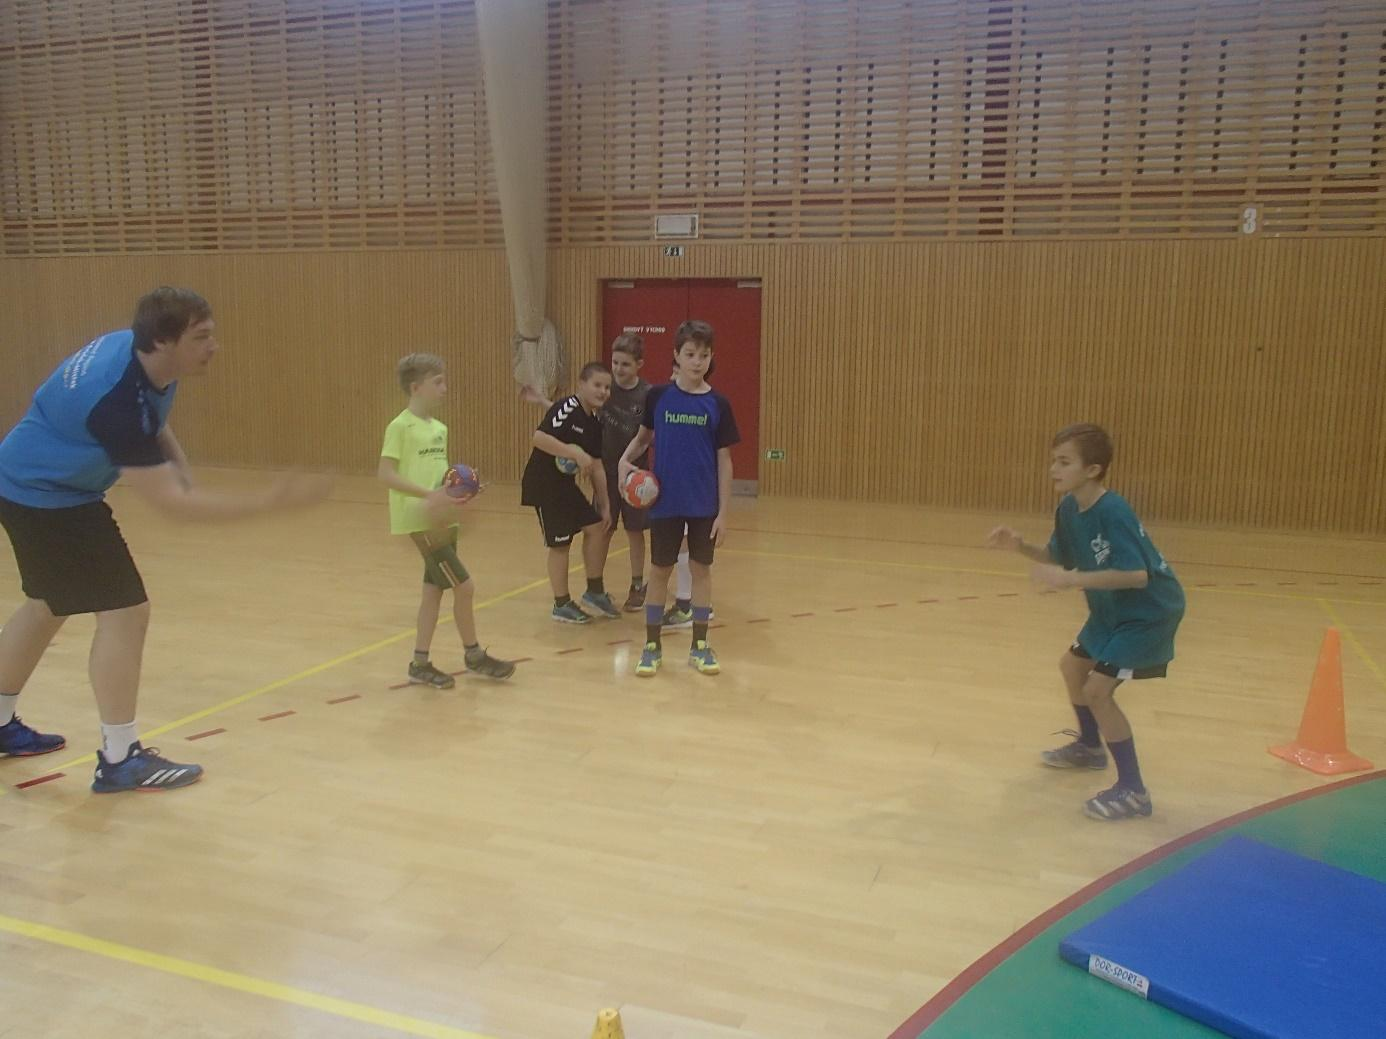 C:\Users\Pedagog\Pictures\Hanball camp ml. ž. 25.11.18\PB250153.JPG